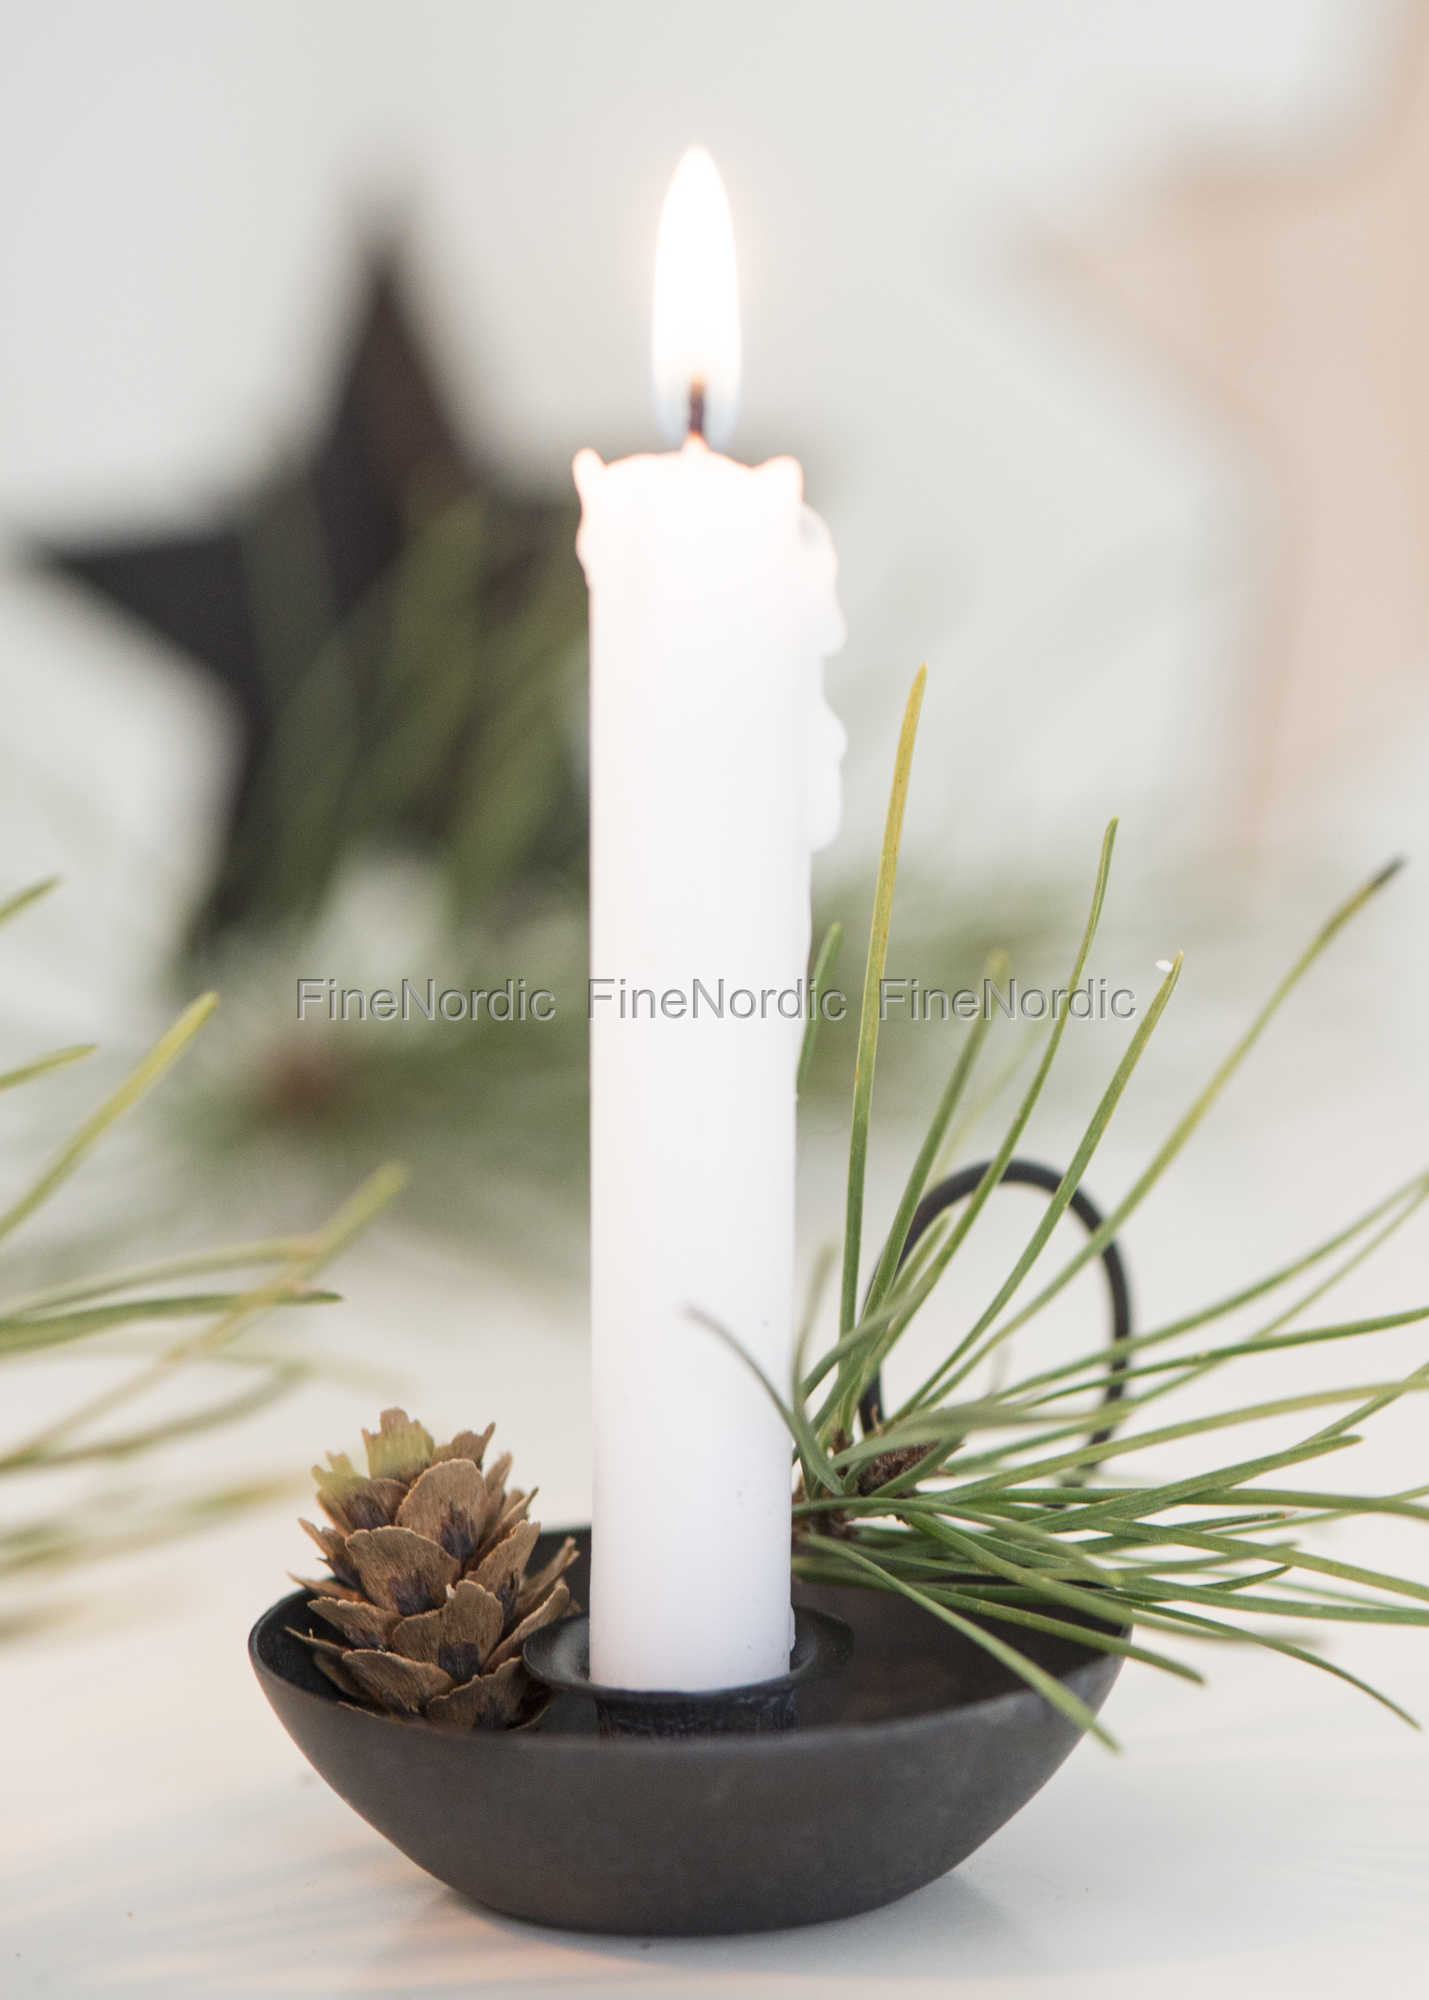 Ib Laursen Candle Holder For Thin Candles Factory Black